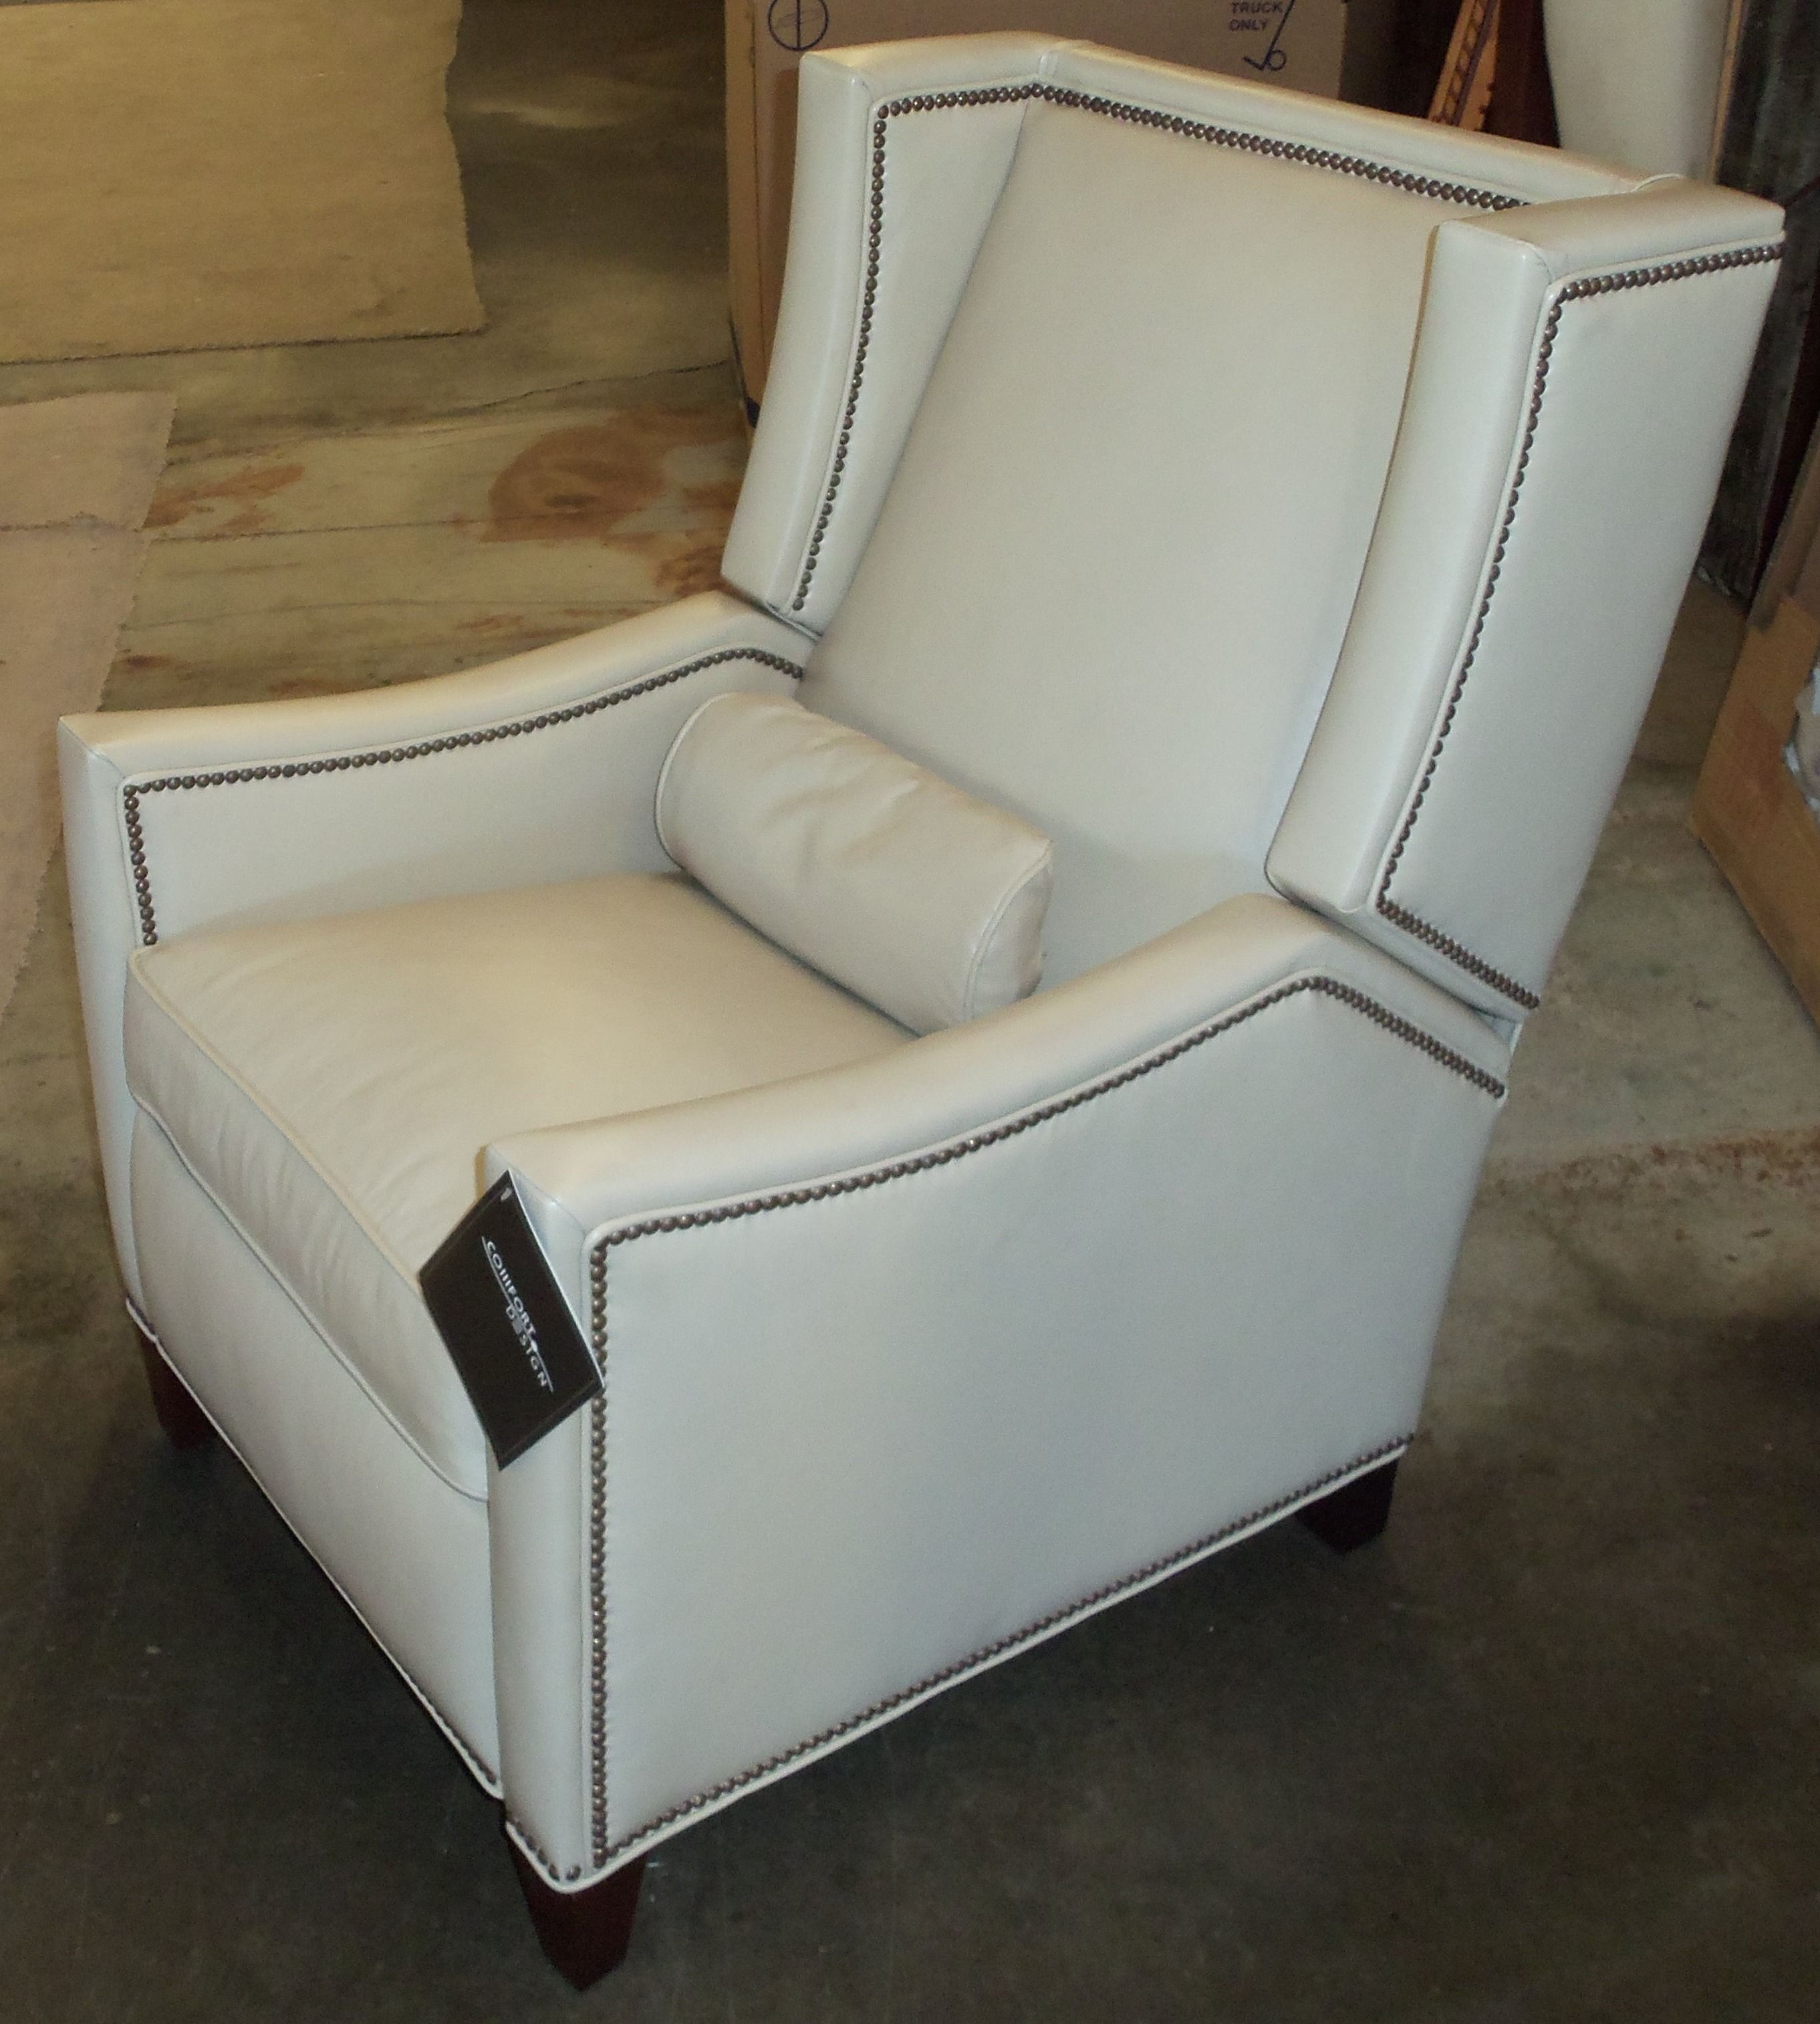 armchair comfort for comforter bertolini gaming spinny design game cozy reclining in sofa intended recliner chairs furniture chair the